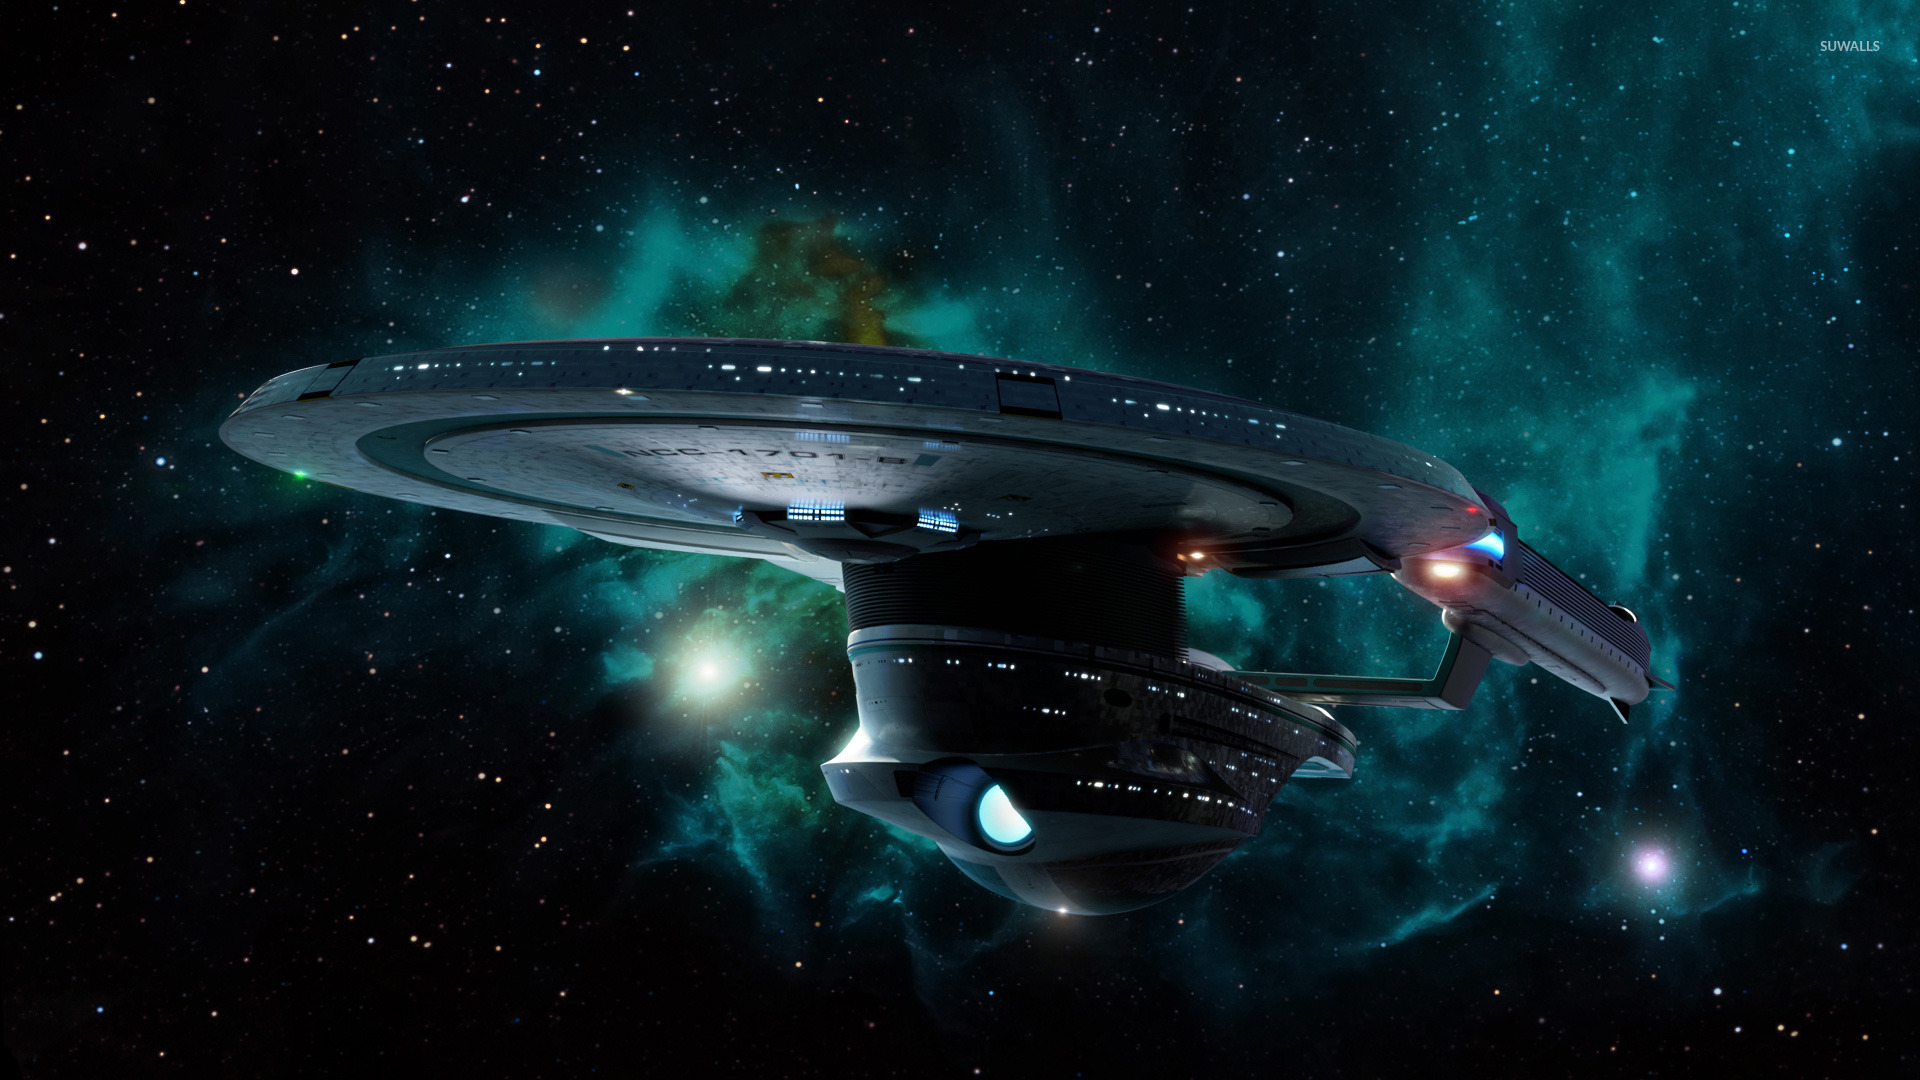 starship enterprise wallpaper - movie wallpapers - #25355